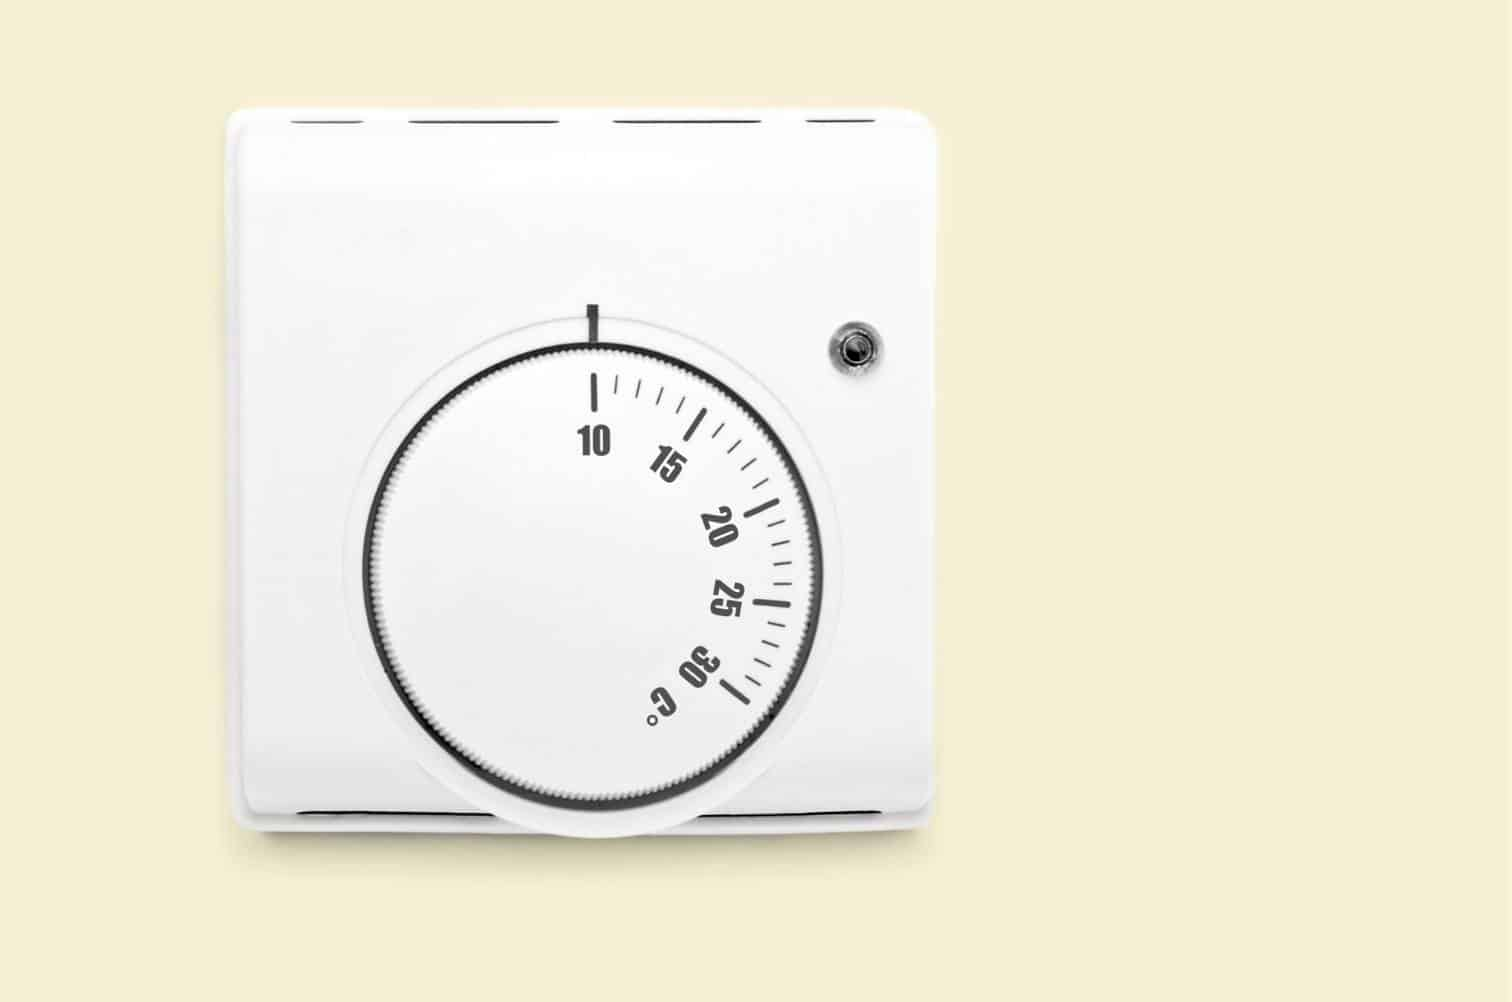 How Can I Override My Honeywell Thermostat Recovery Mode